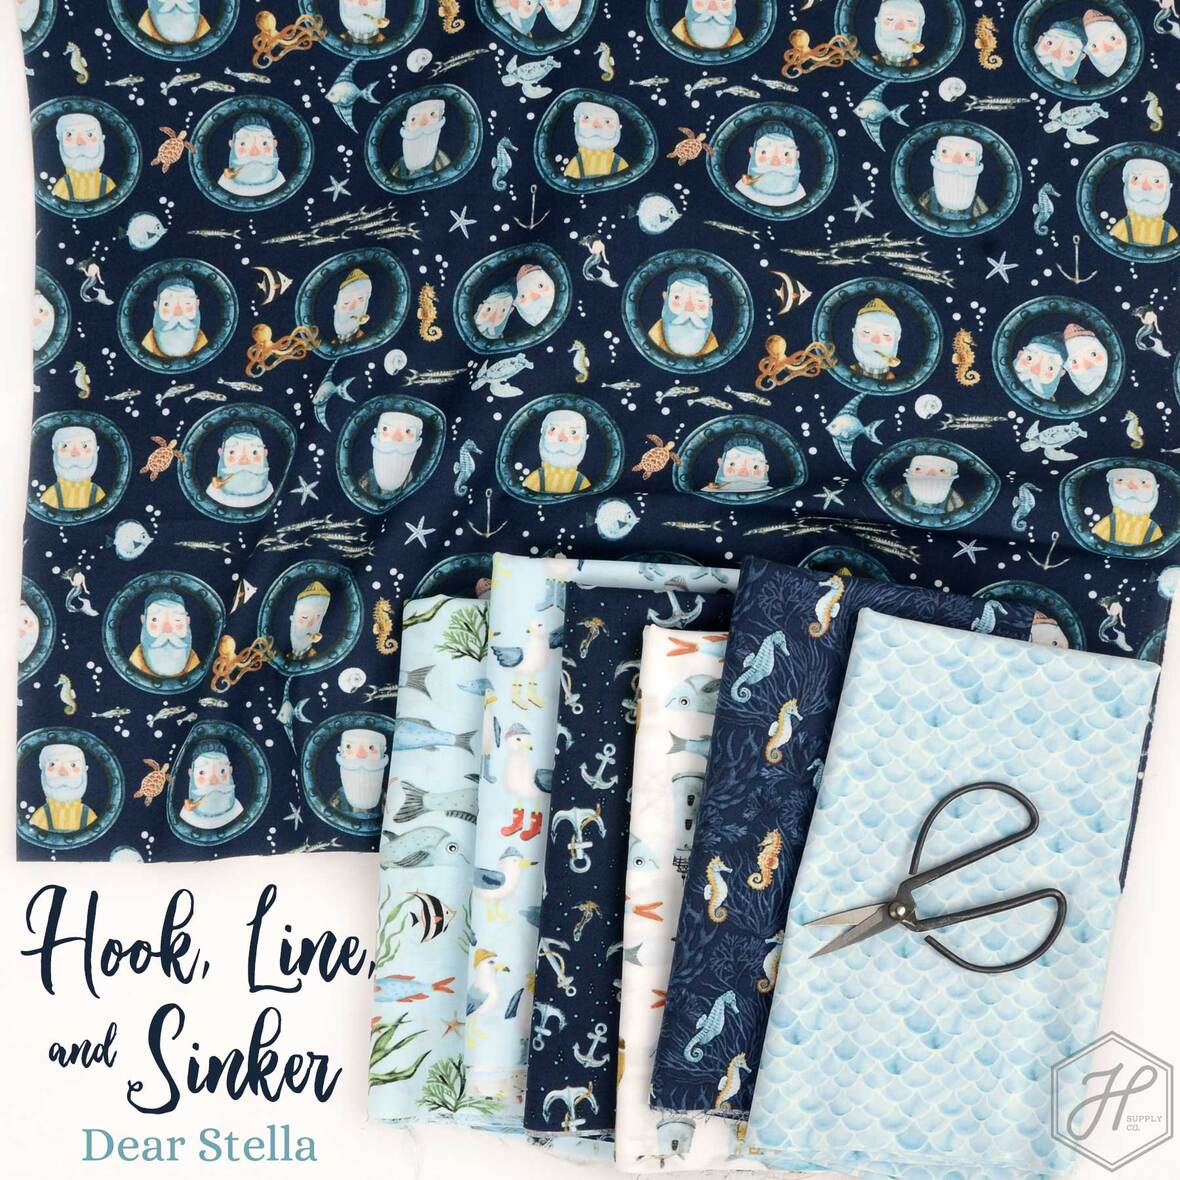 Hook-Line-and-Sinker-Fabric-Nautical-Dear-Stella-at-Hawthorne-Supply-Co